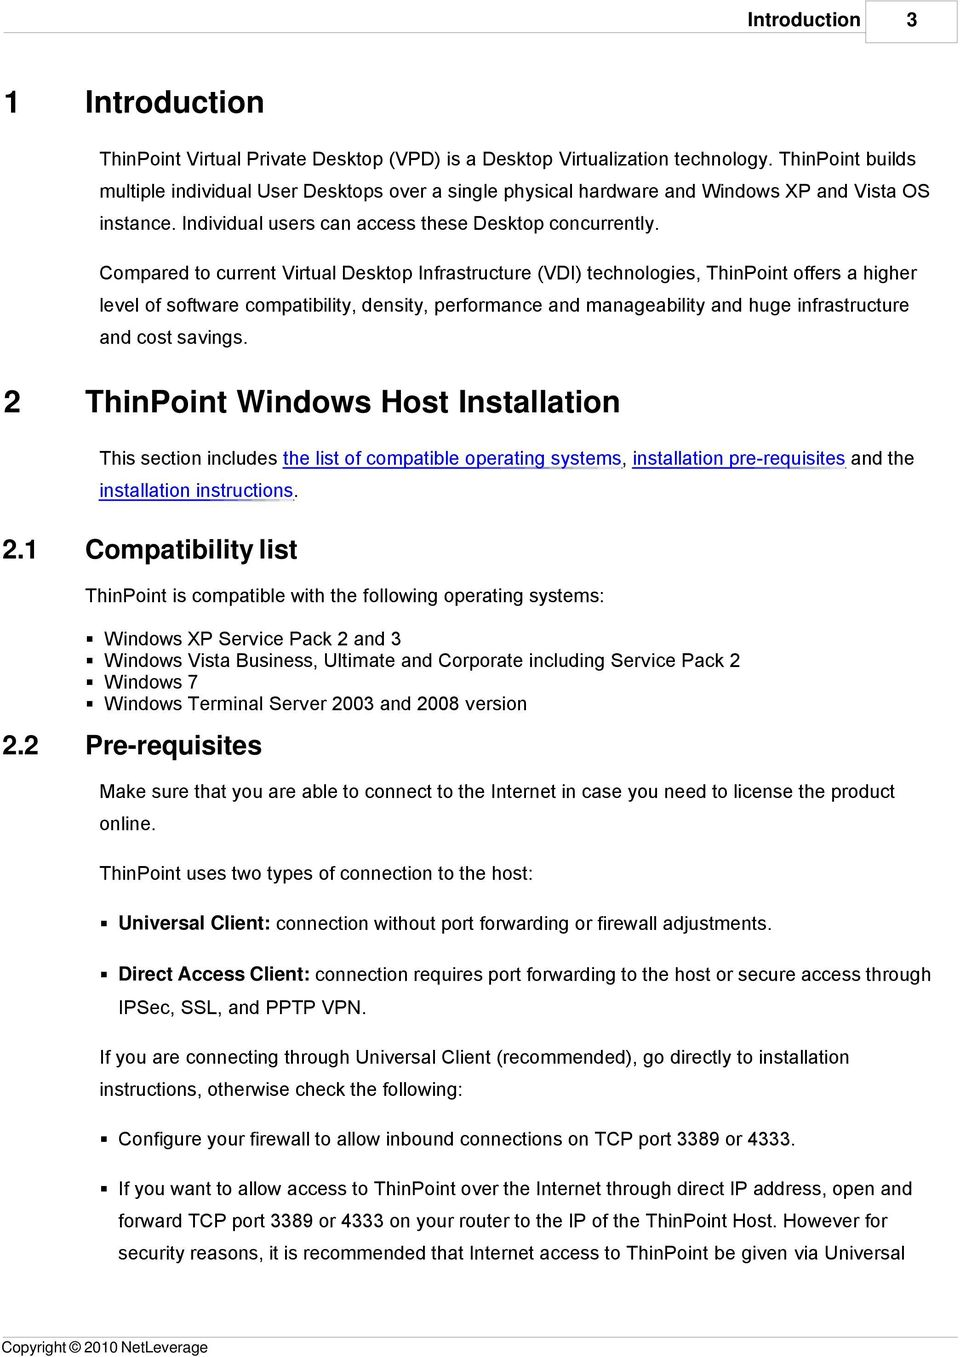 Compared to current Virtual Desktop Infrastructure (VDI) technologies, ThinPoint offers a higher level of software compatibility, density, performance and manageability and huge infrastructure and